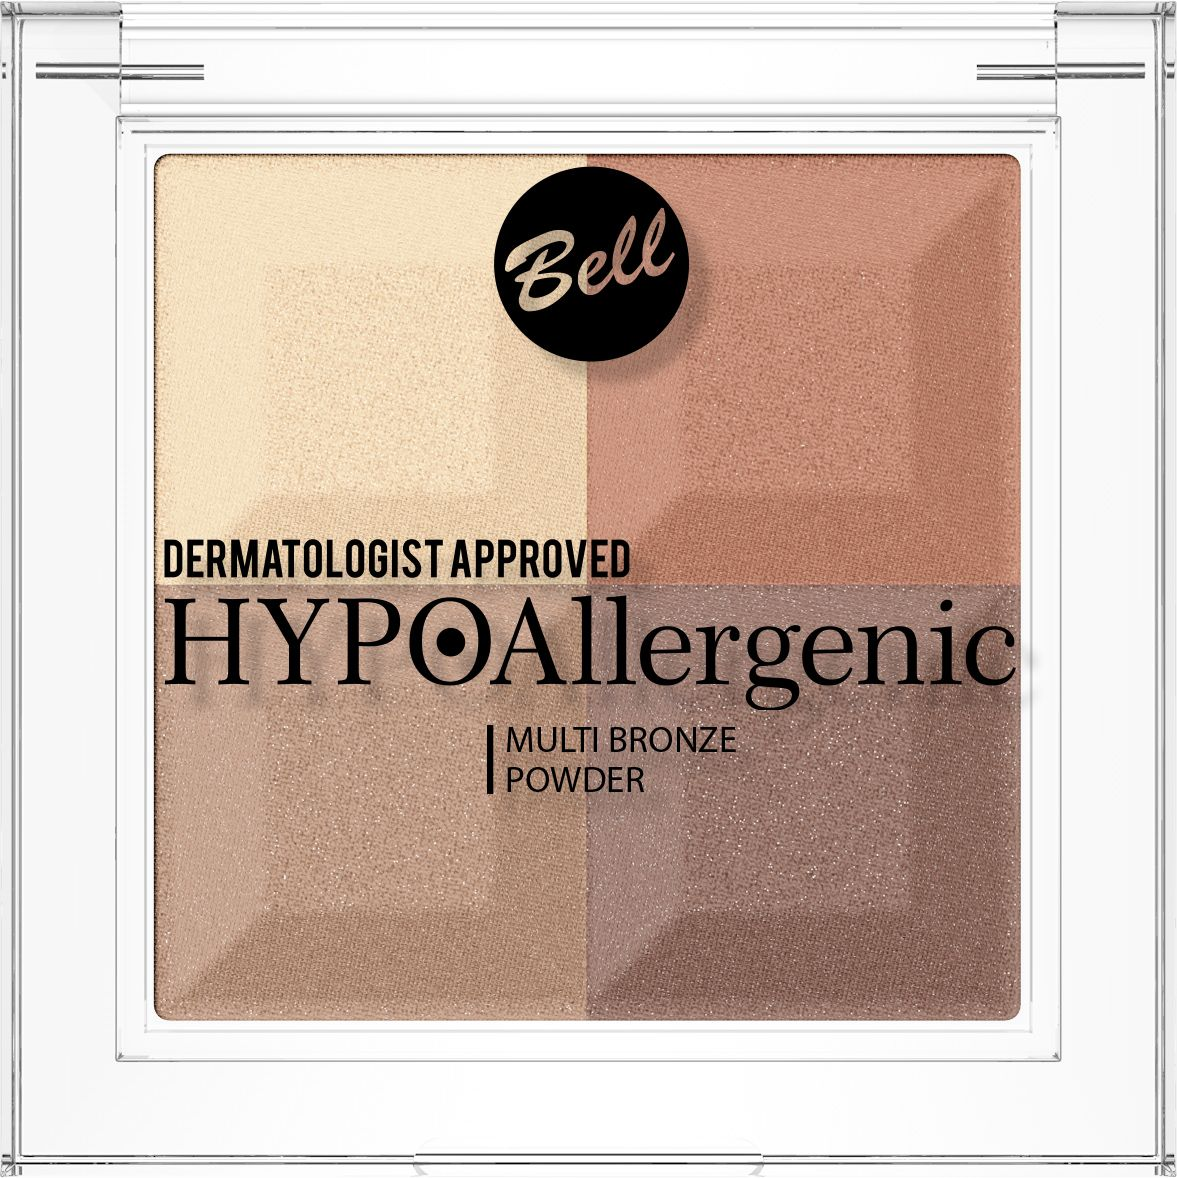 Bell Hypoallergenic Пудра с бронзирующим и осветляющим эффектом Multi Bronze Powder, Тон №03 пудра essence mattifying compact powder 04 цвет 04 perfect beige variant hex name facfbb